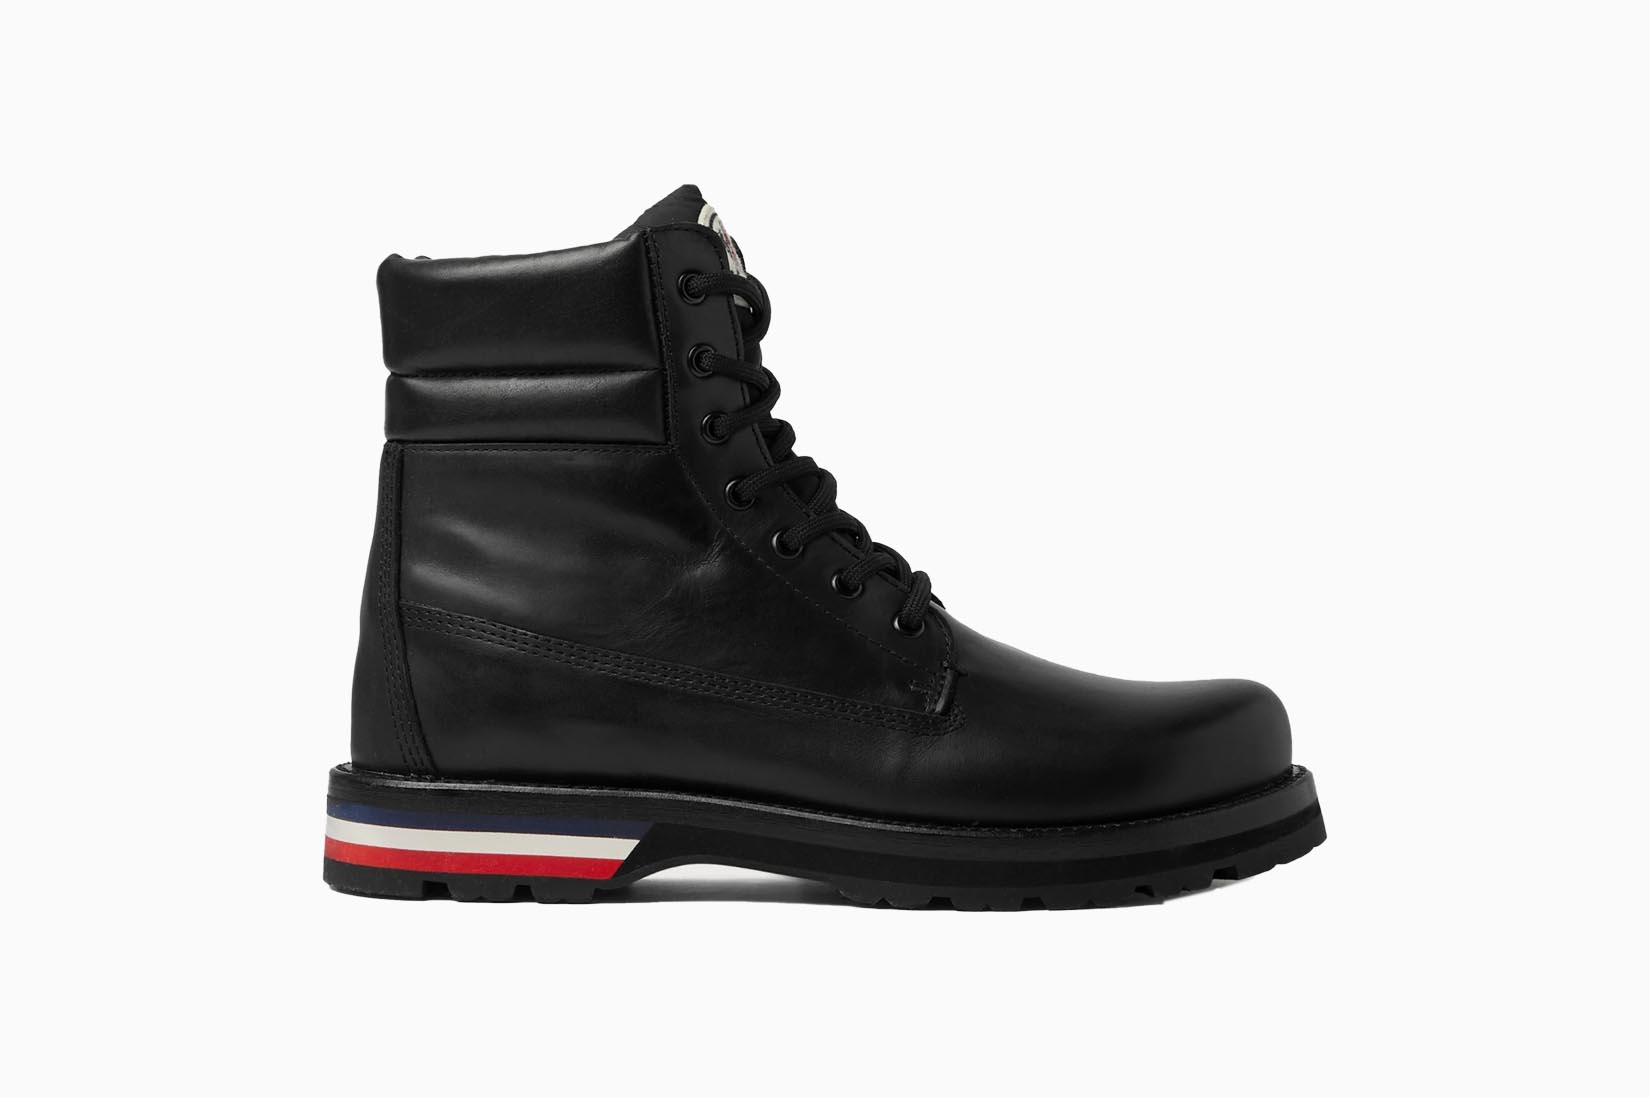 best boots men moncler vancouver leather hiking boots review Luxe Digital